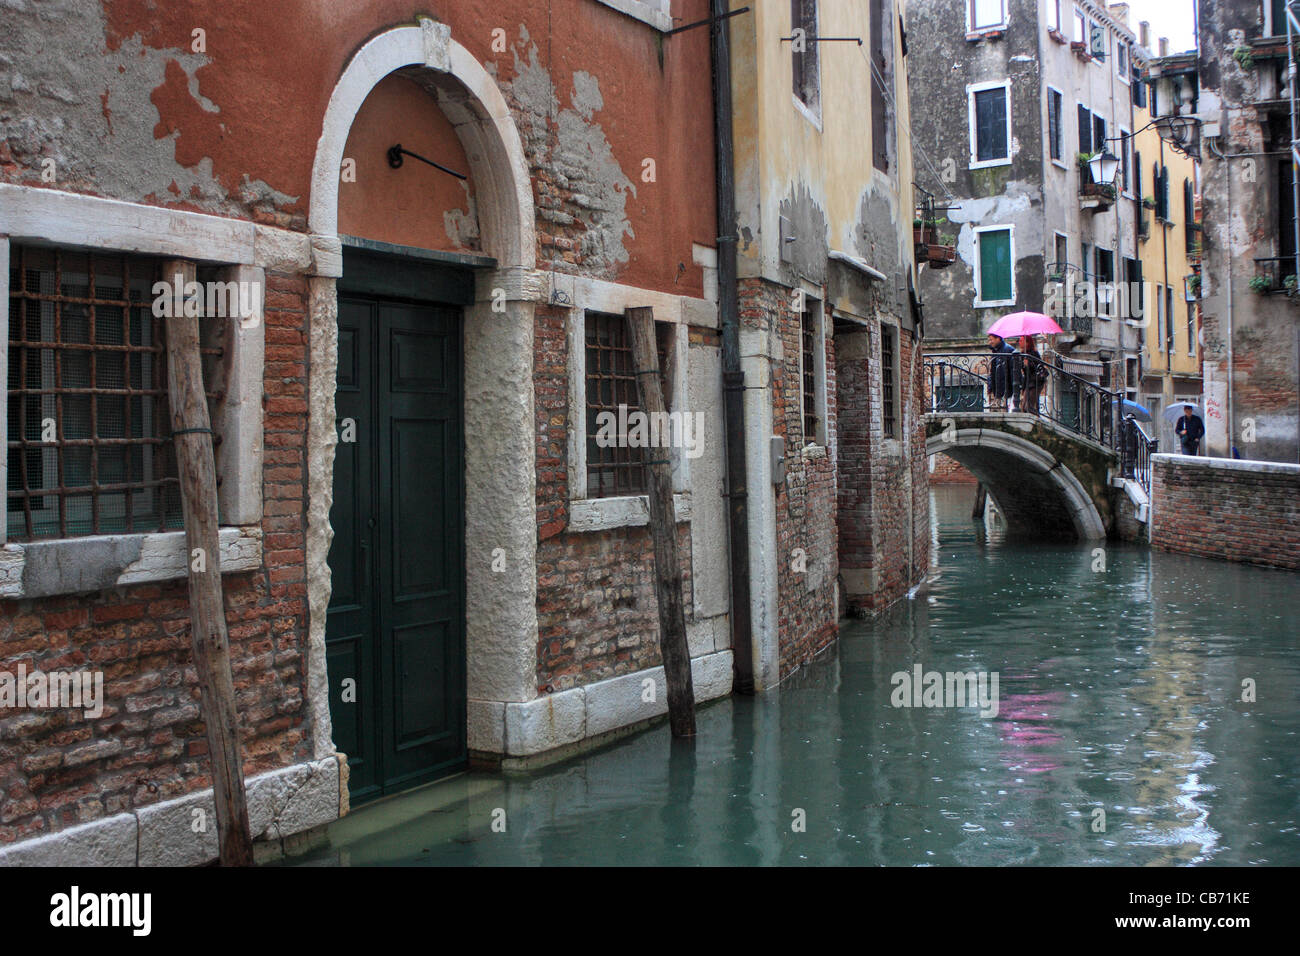 Raining in Venice, Italy - Stock Image